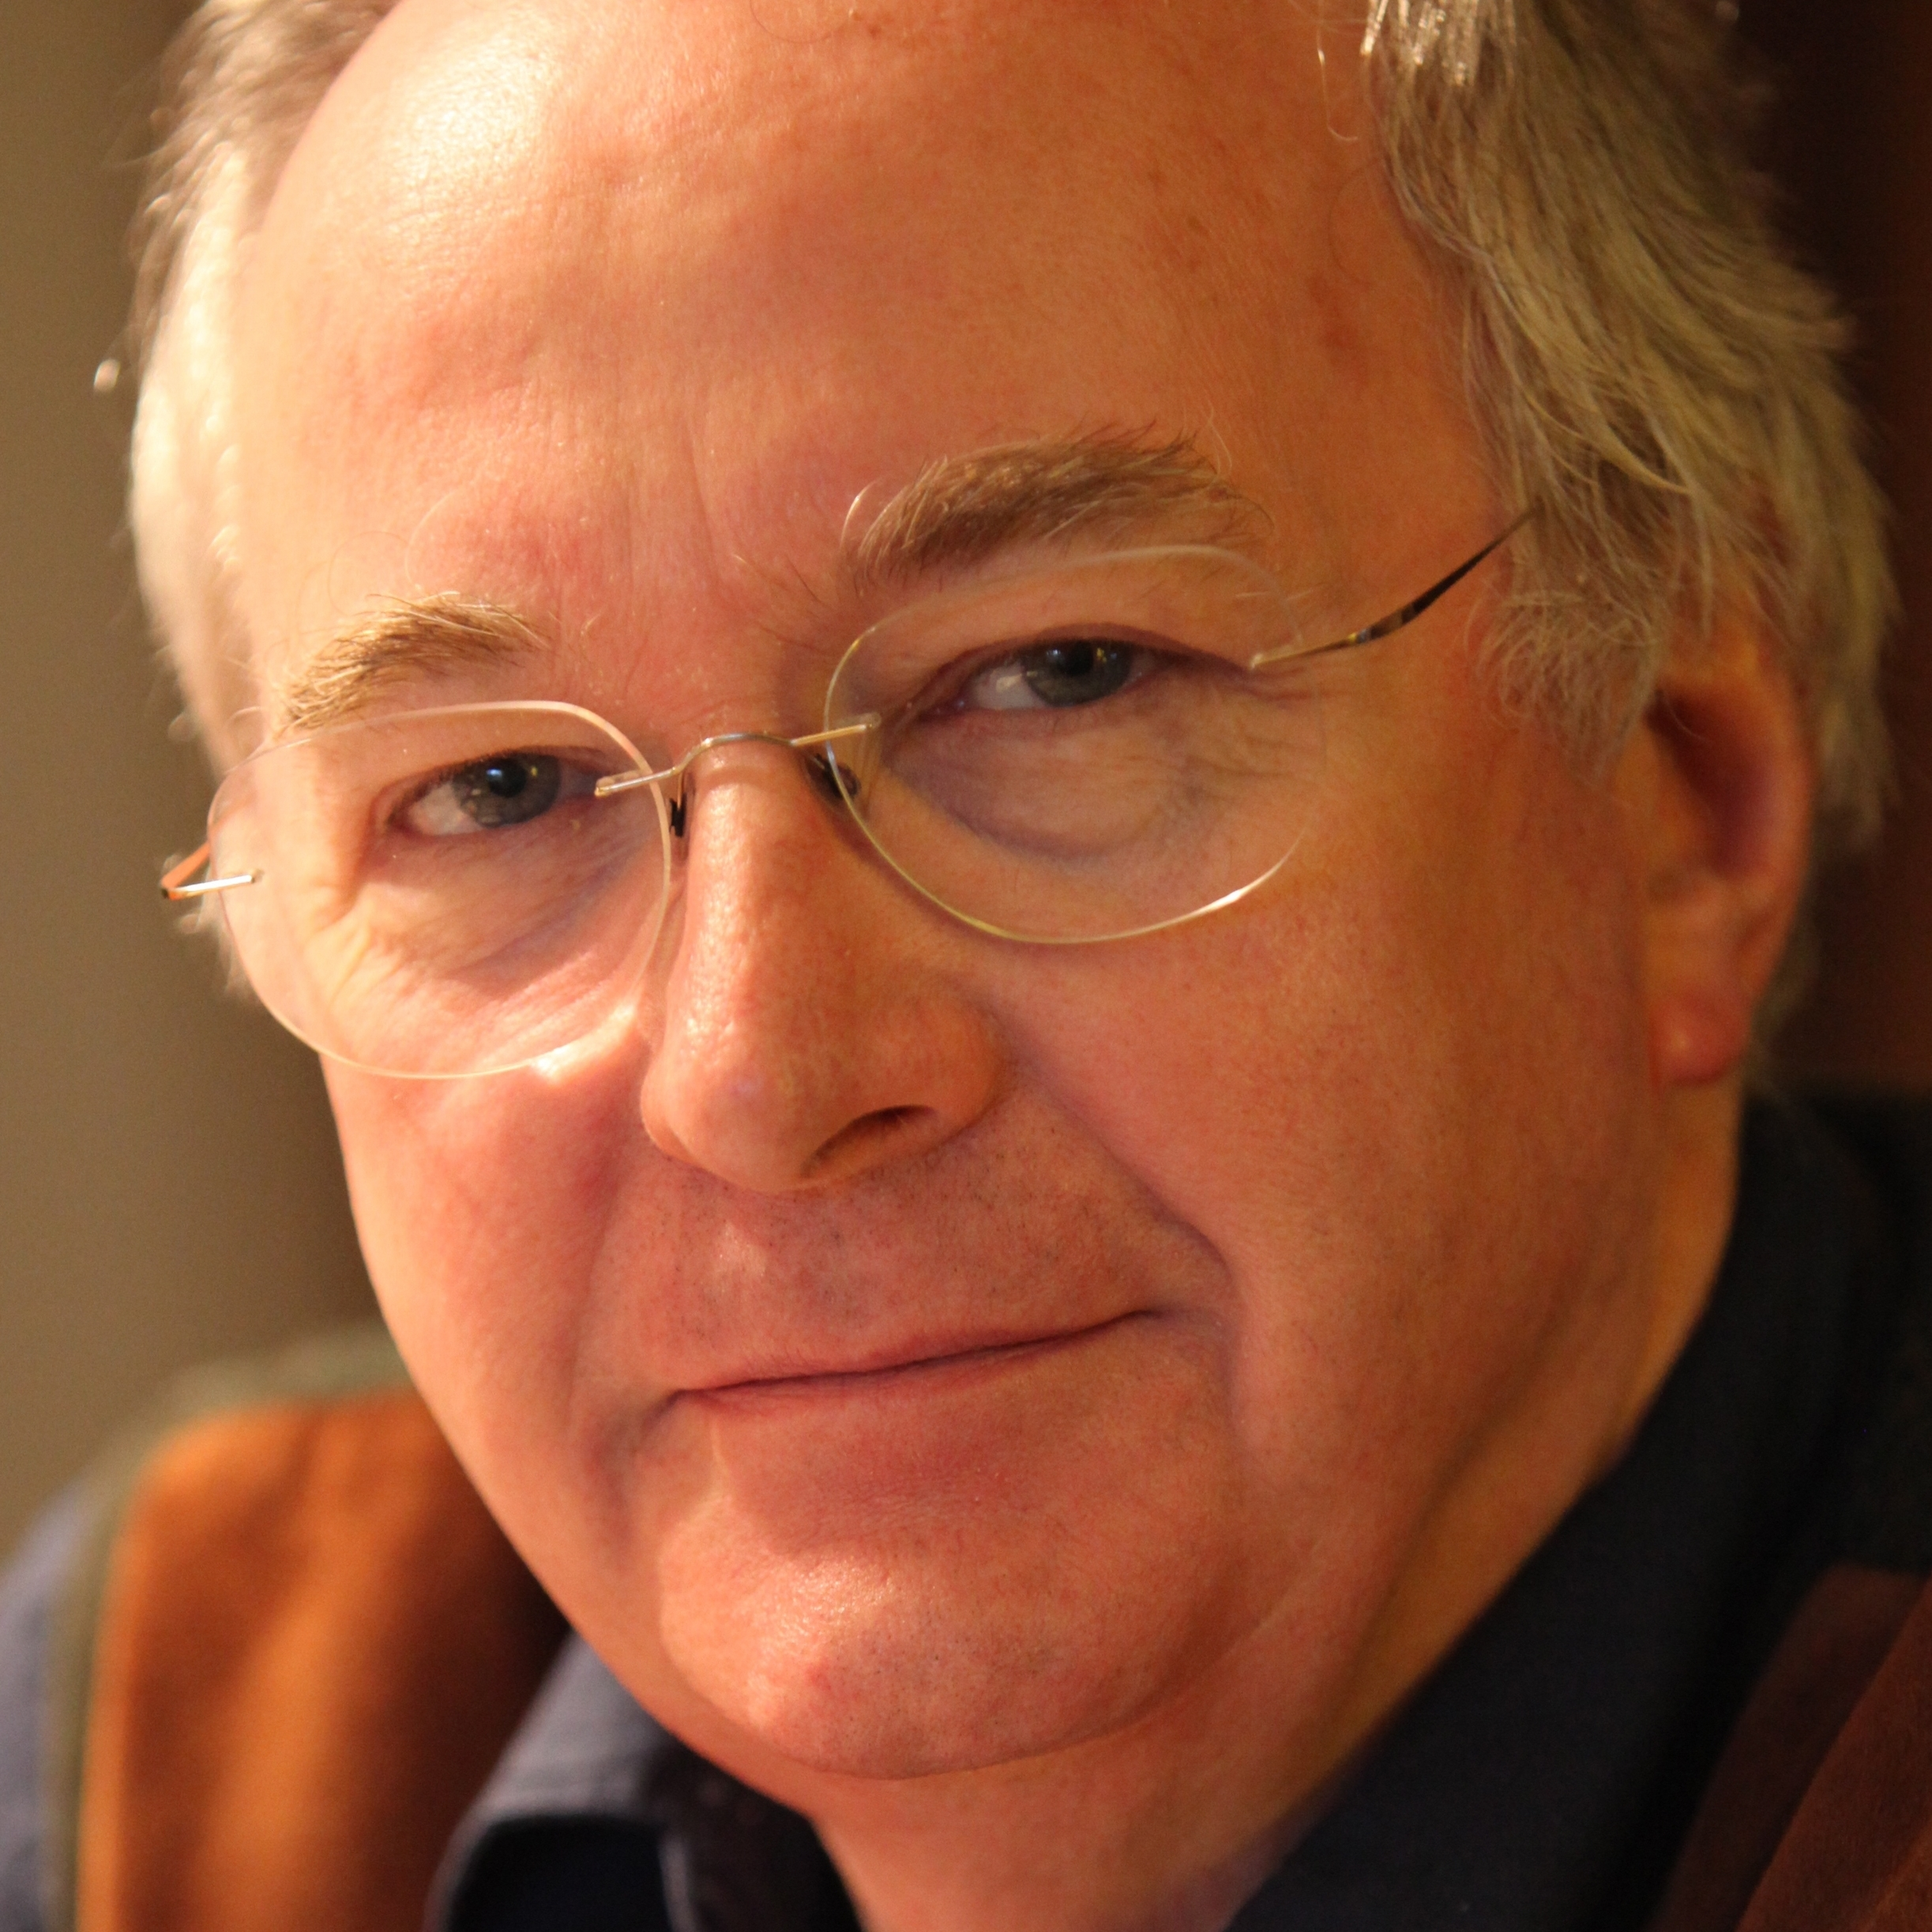 Philip Pullman is the author of the His Dark Materials fantasy trilogy, which includes The Golden Compass, The Subtle Knife and The Amber Spyglass.